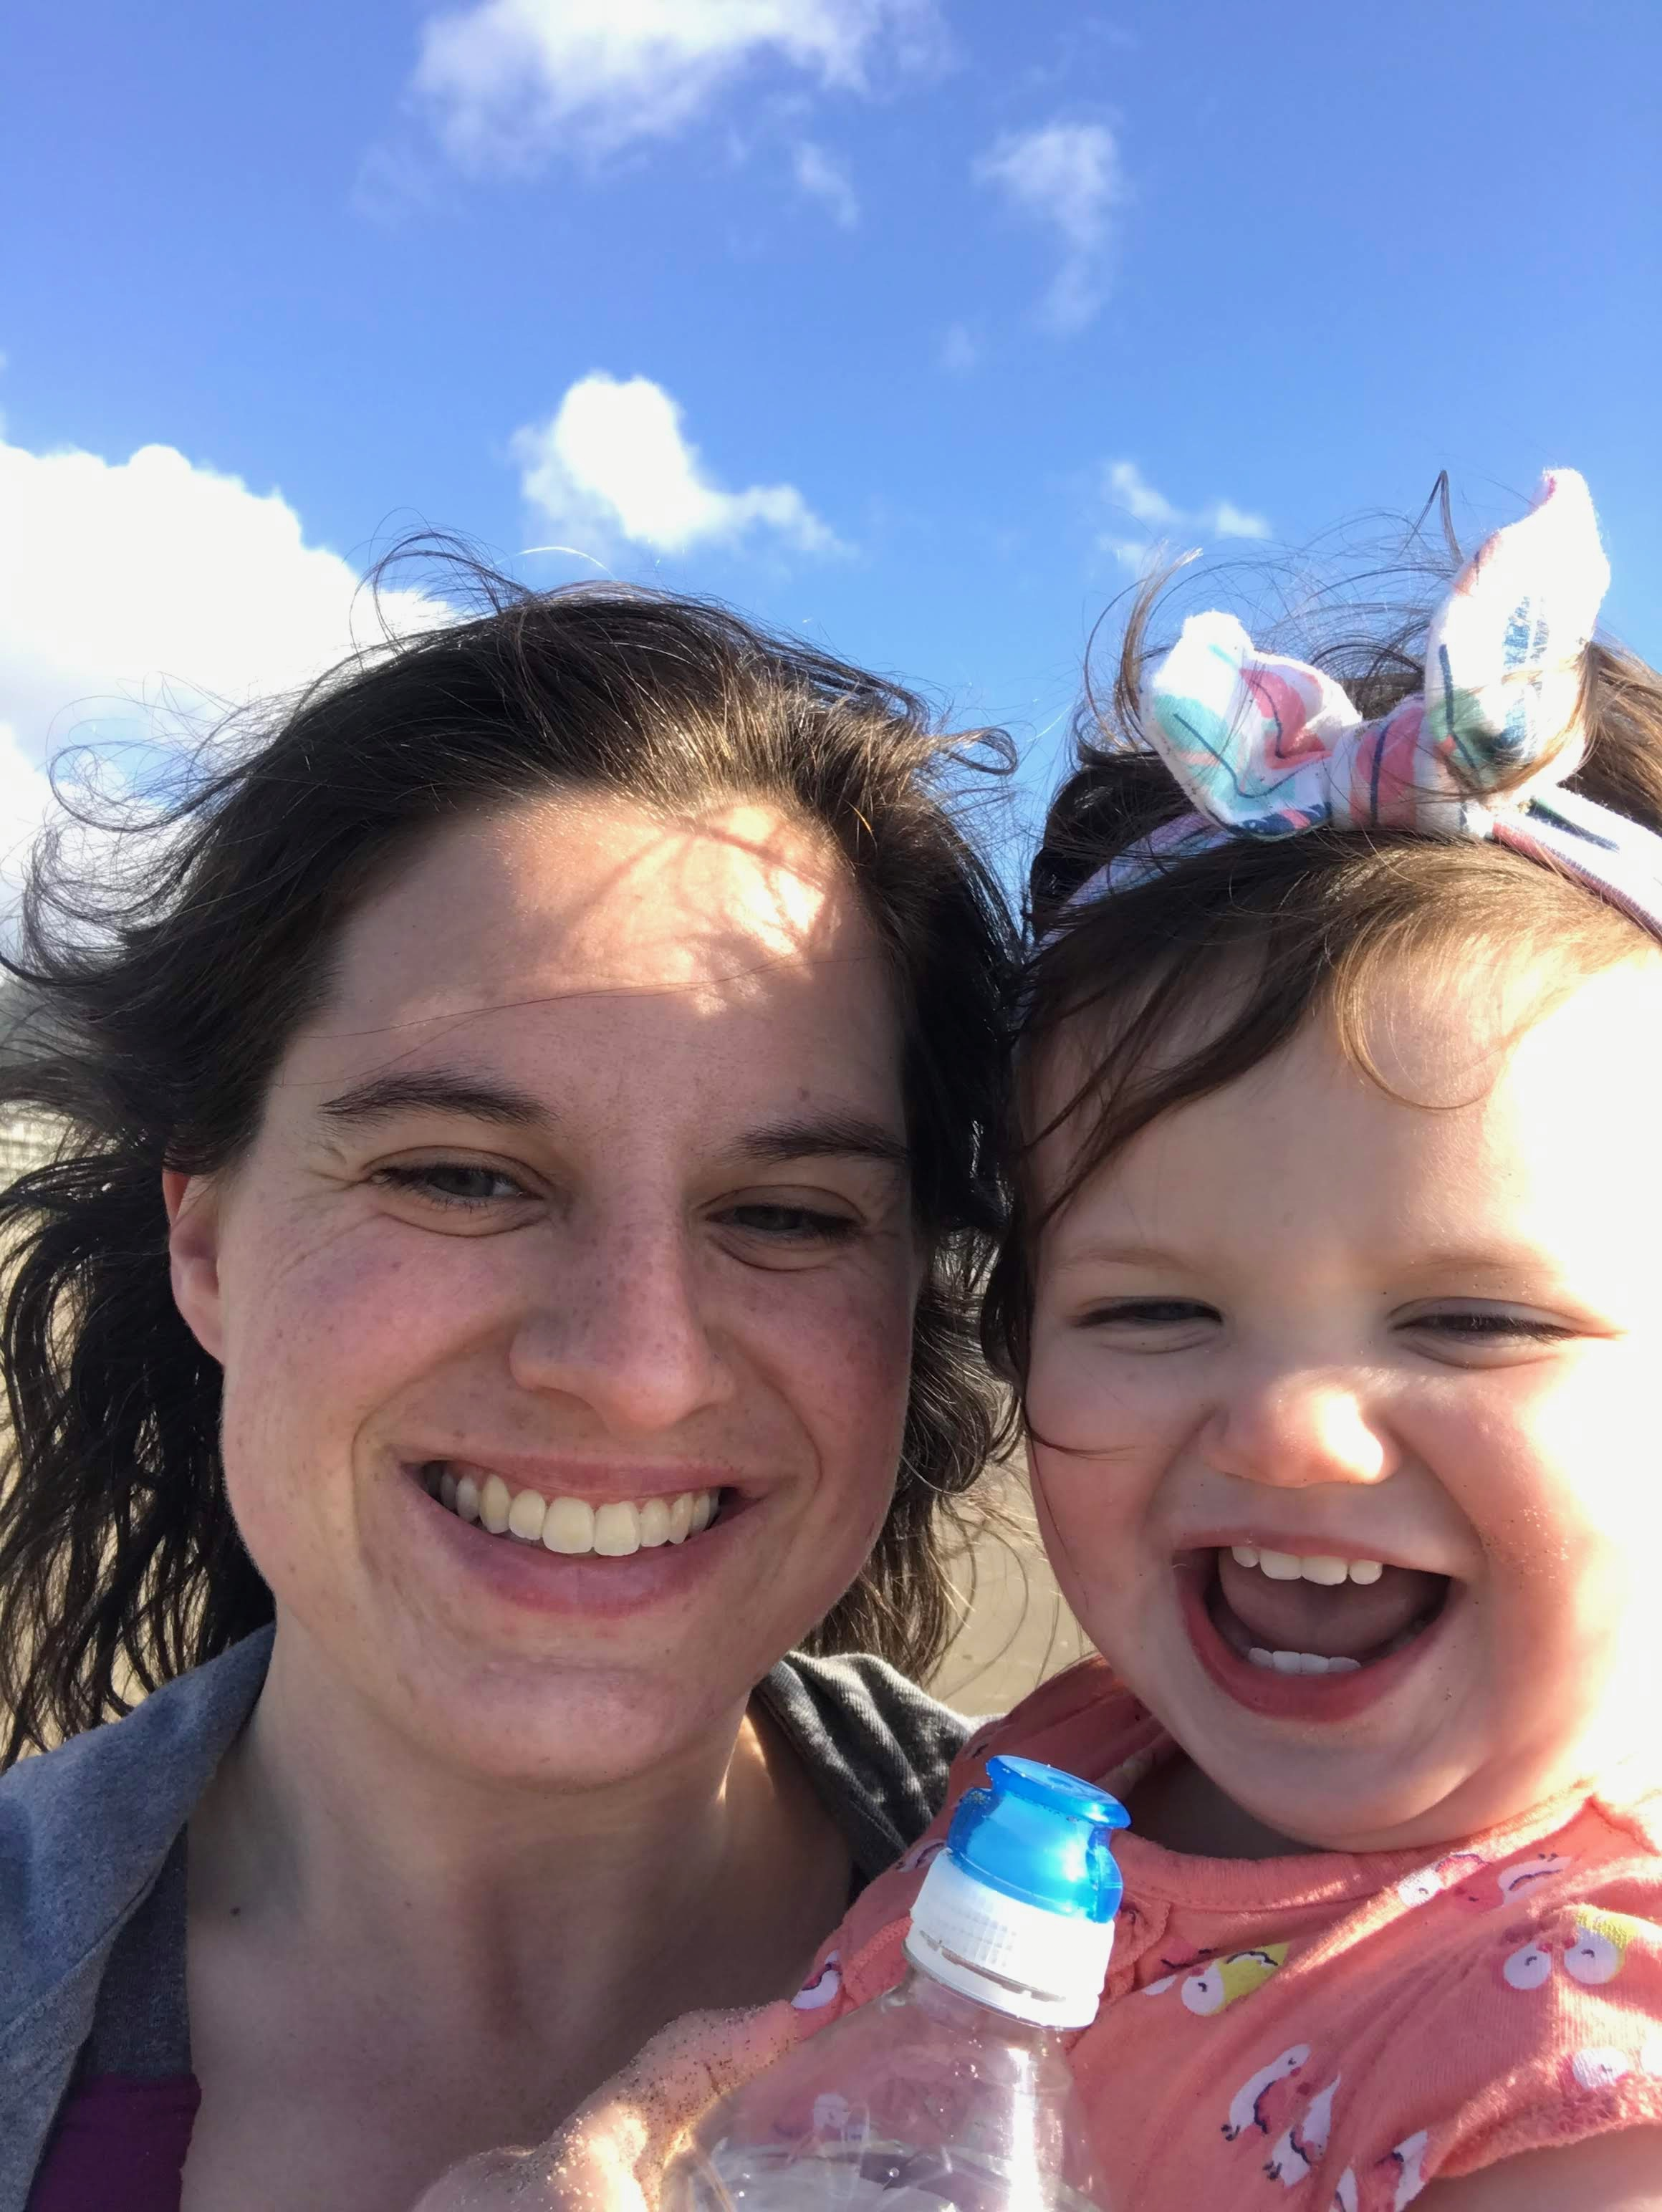 Niki Cox - ReceptionistNiki joined the IC staff spring of 2019. She brings a variety of skills and abilities to our team, particularly in working with people. Niki and her husband Sam live in Portland with their beautiful daughter Katie.